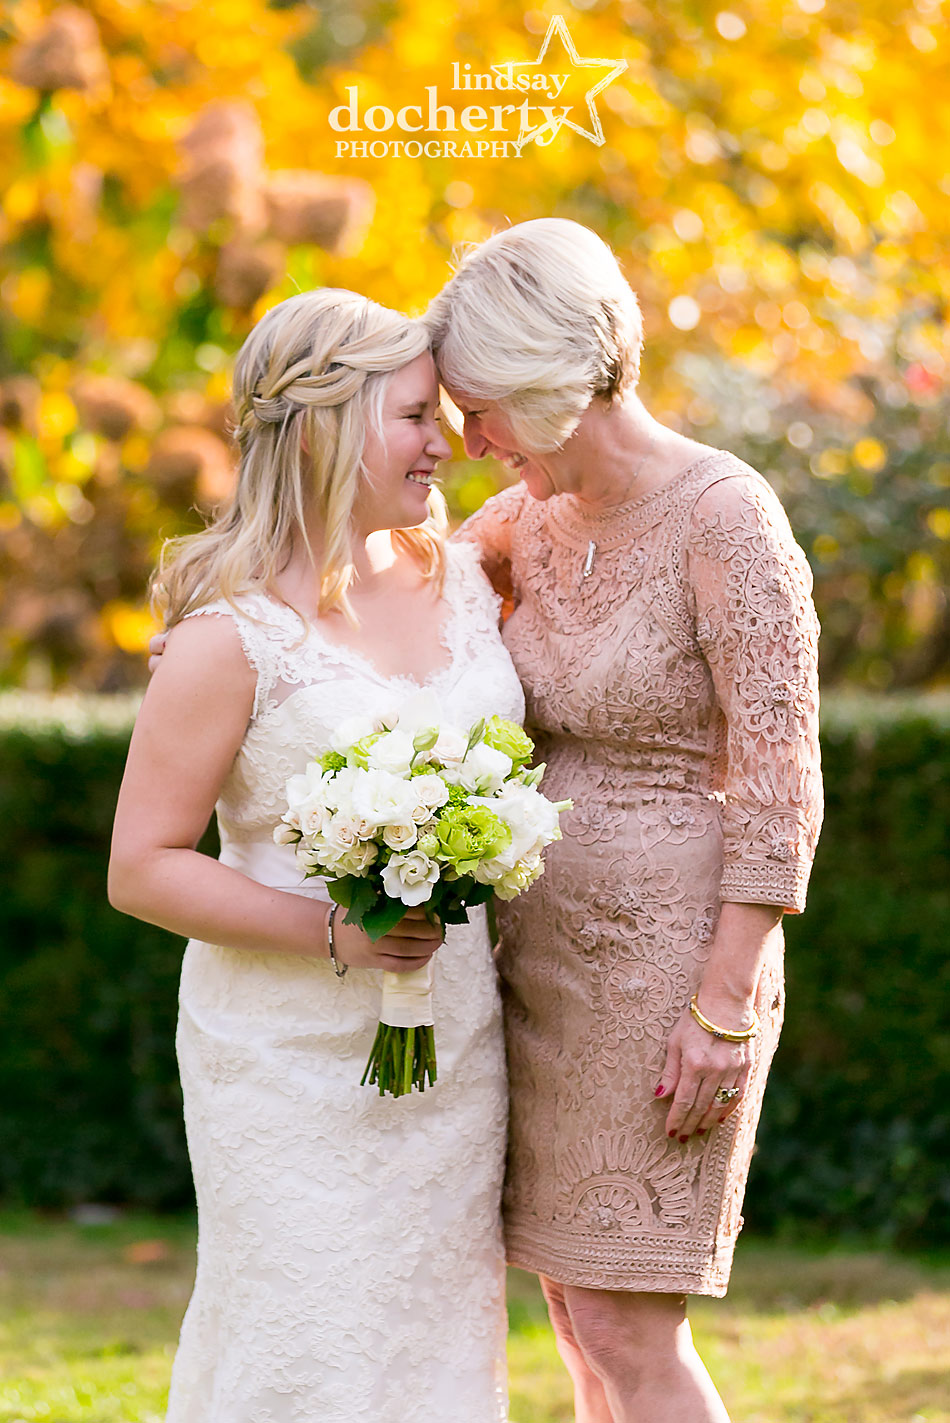 mother-and-daughter-on-fall-wedding-day-in-Philadelphia